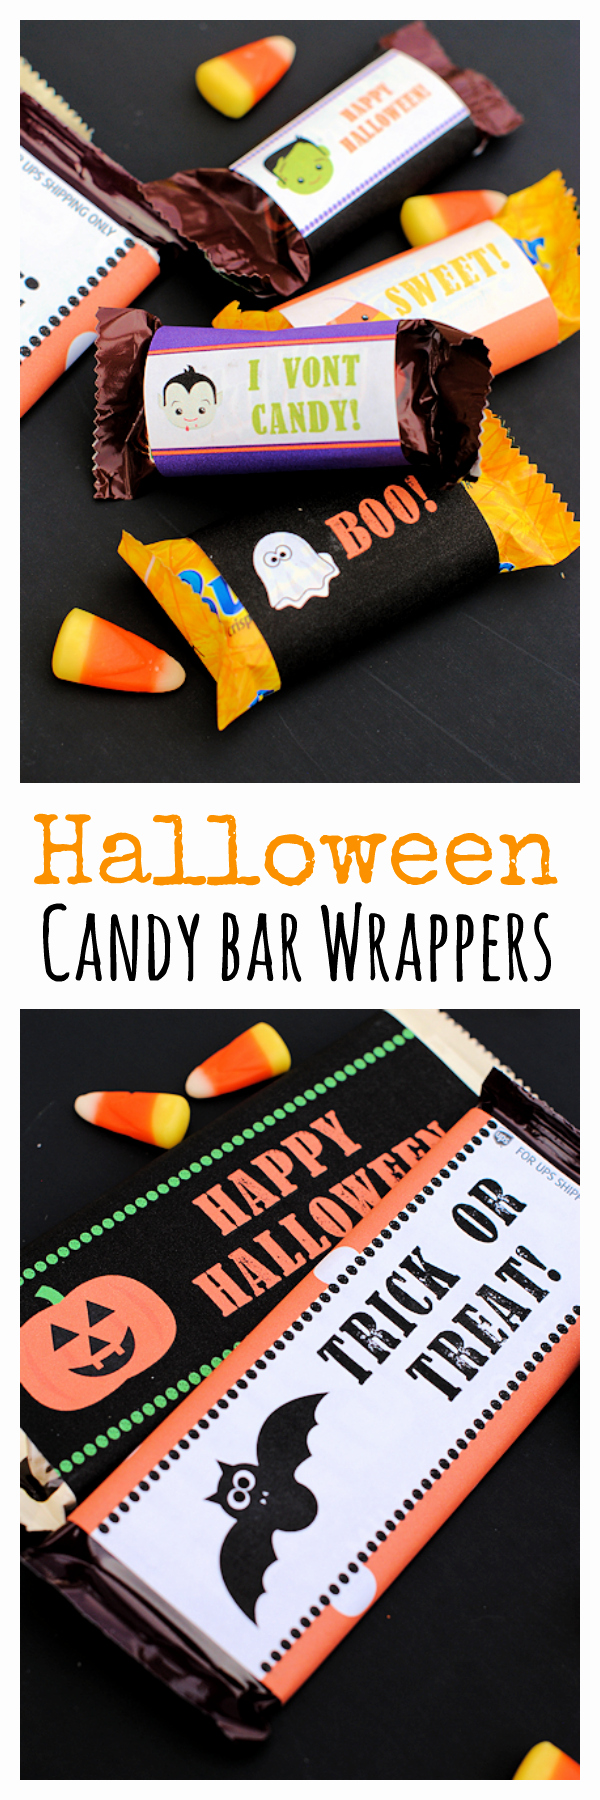 Free Candy Bar Wrappers Inspirational Free Printable Halloween Candy Bar Wrappers Crazy Little